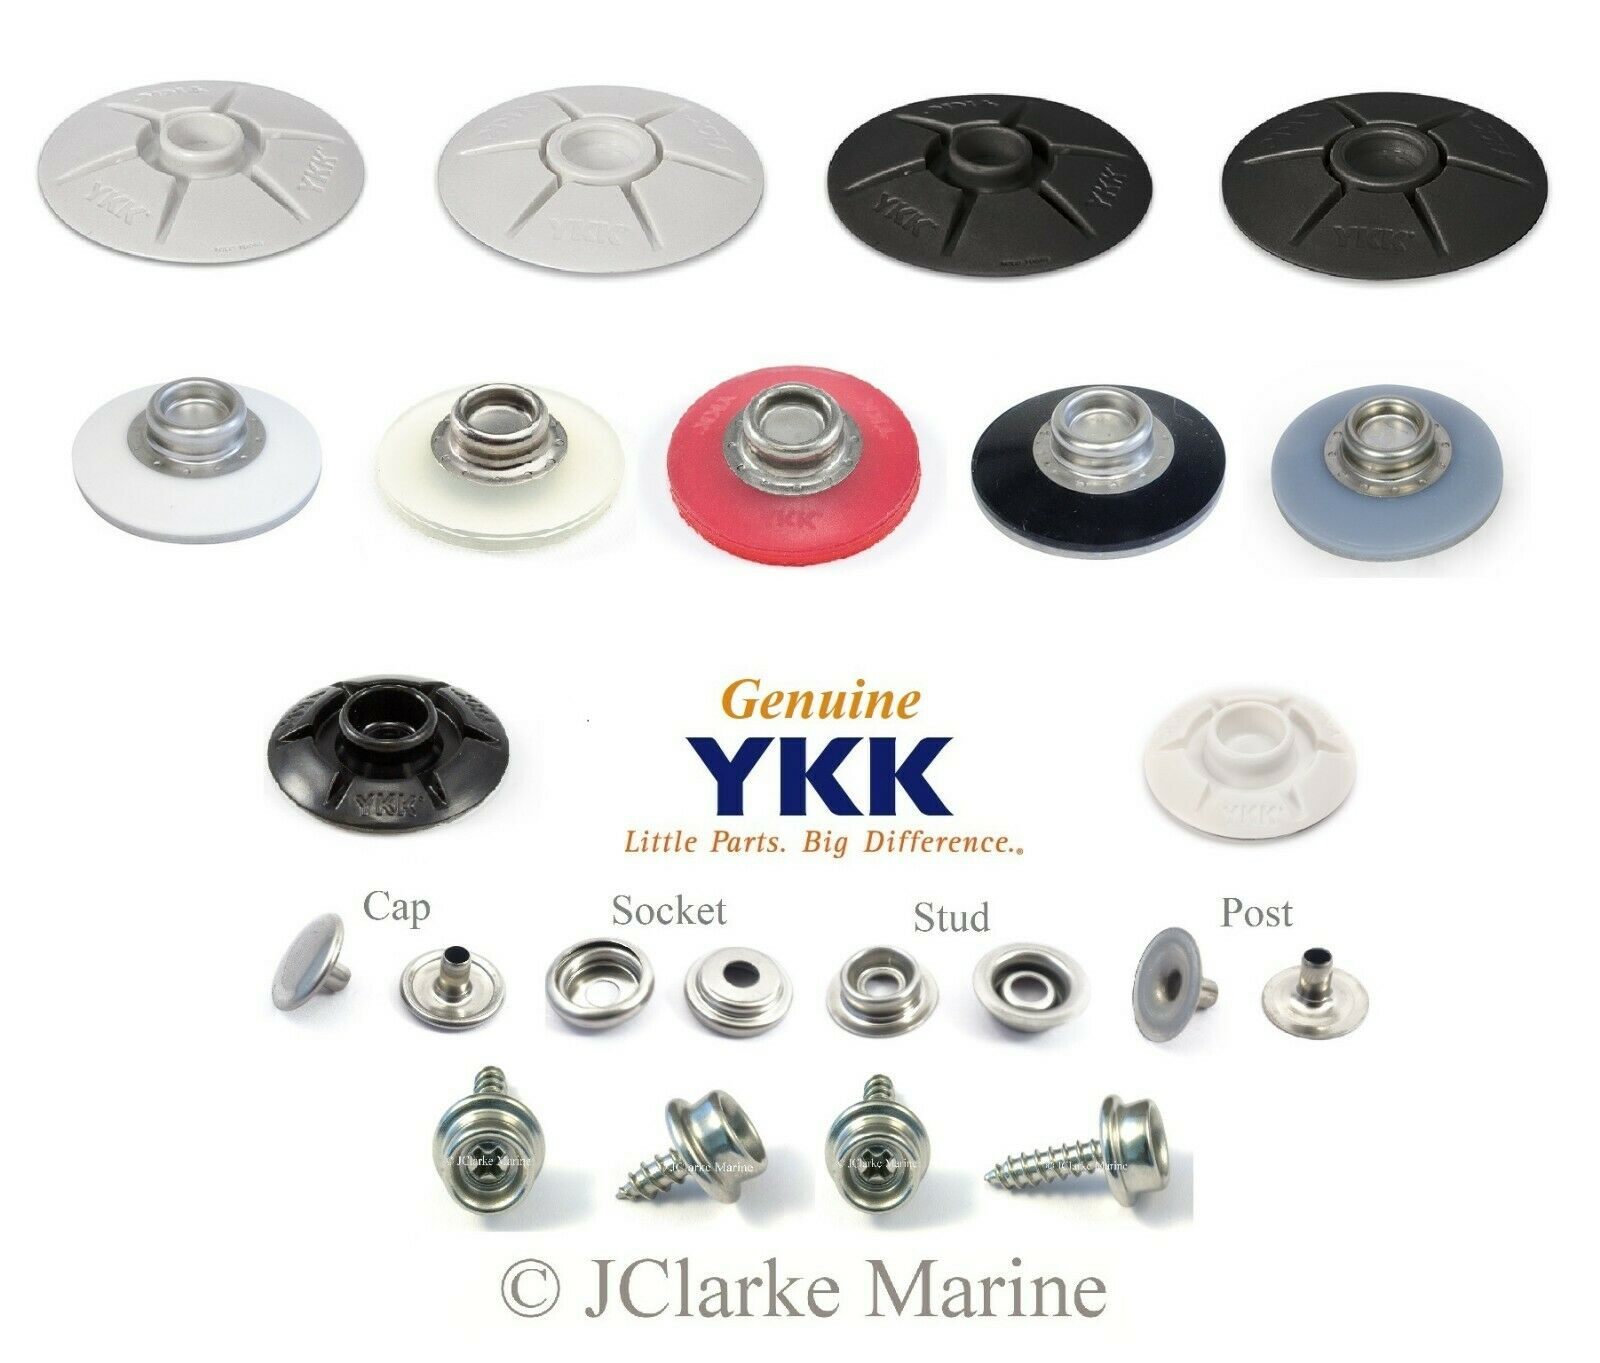 YKK Snad snap fastener self adhesive 40mm & 25mm domed base stud canvas canopy